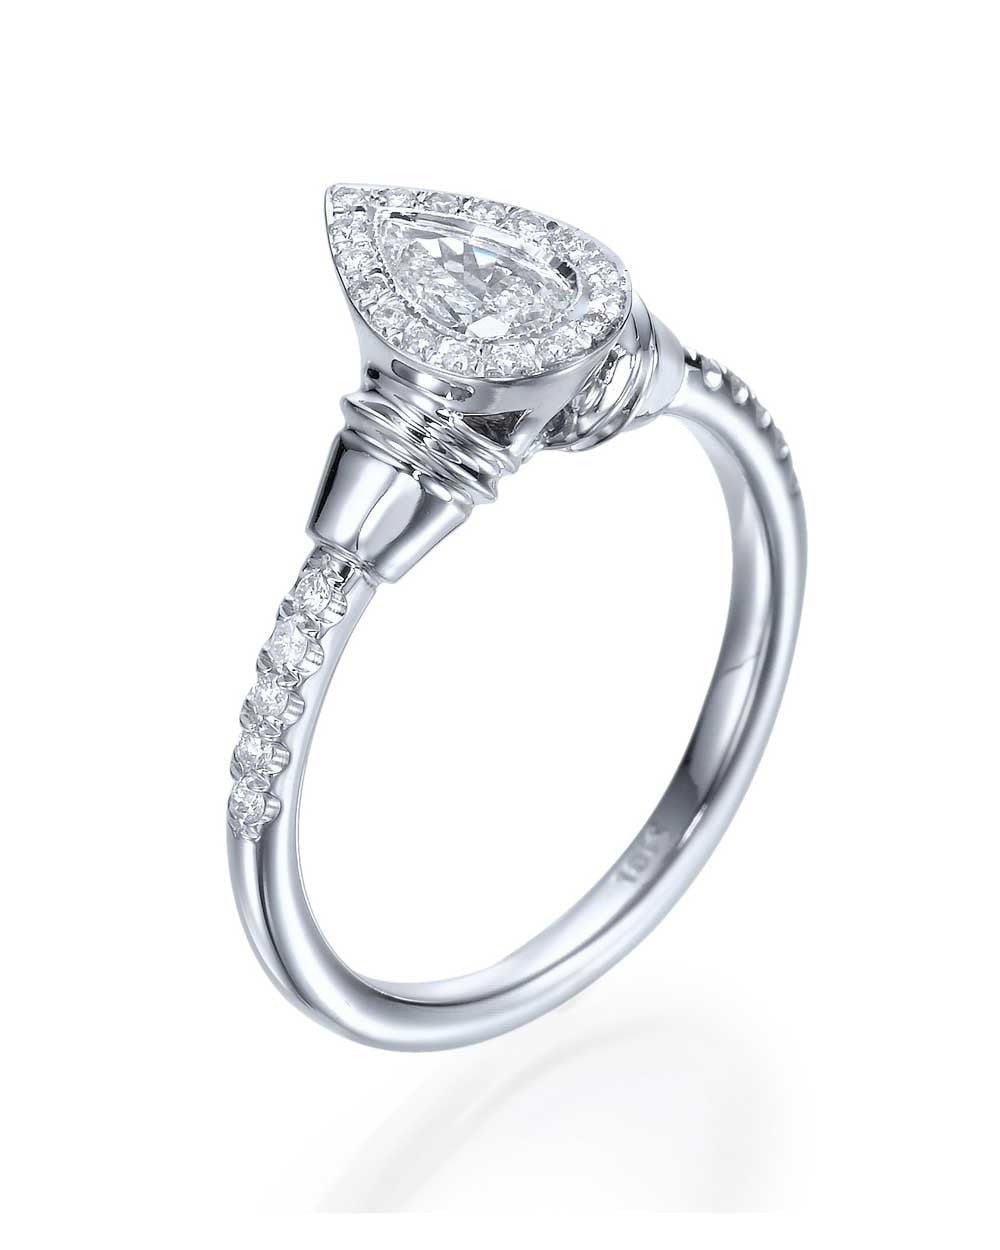 engagement diamond rings shape solomon s pear item shaped dreams halo design york brothers new